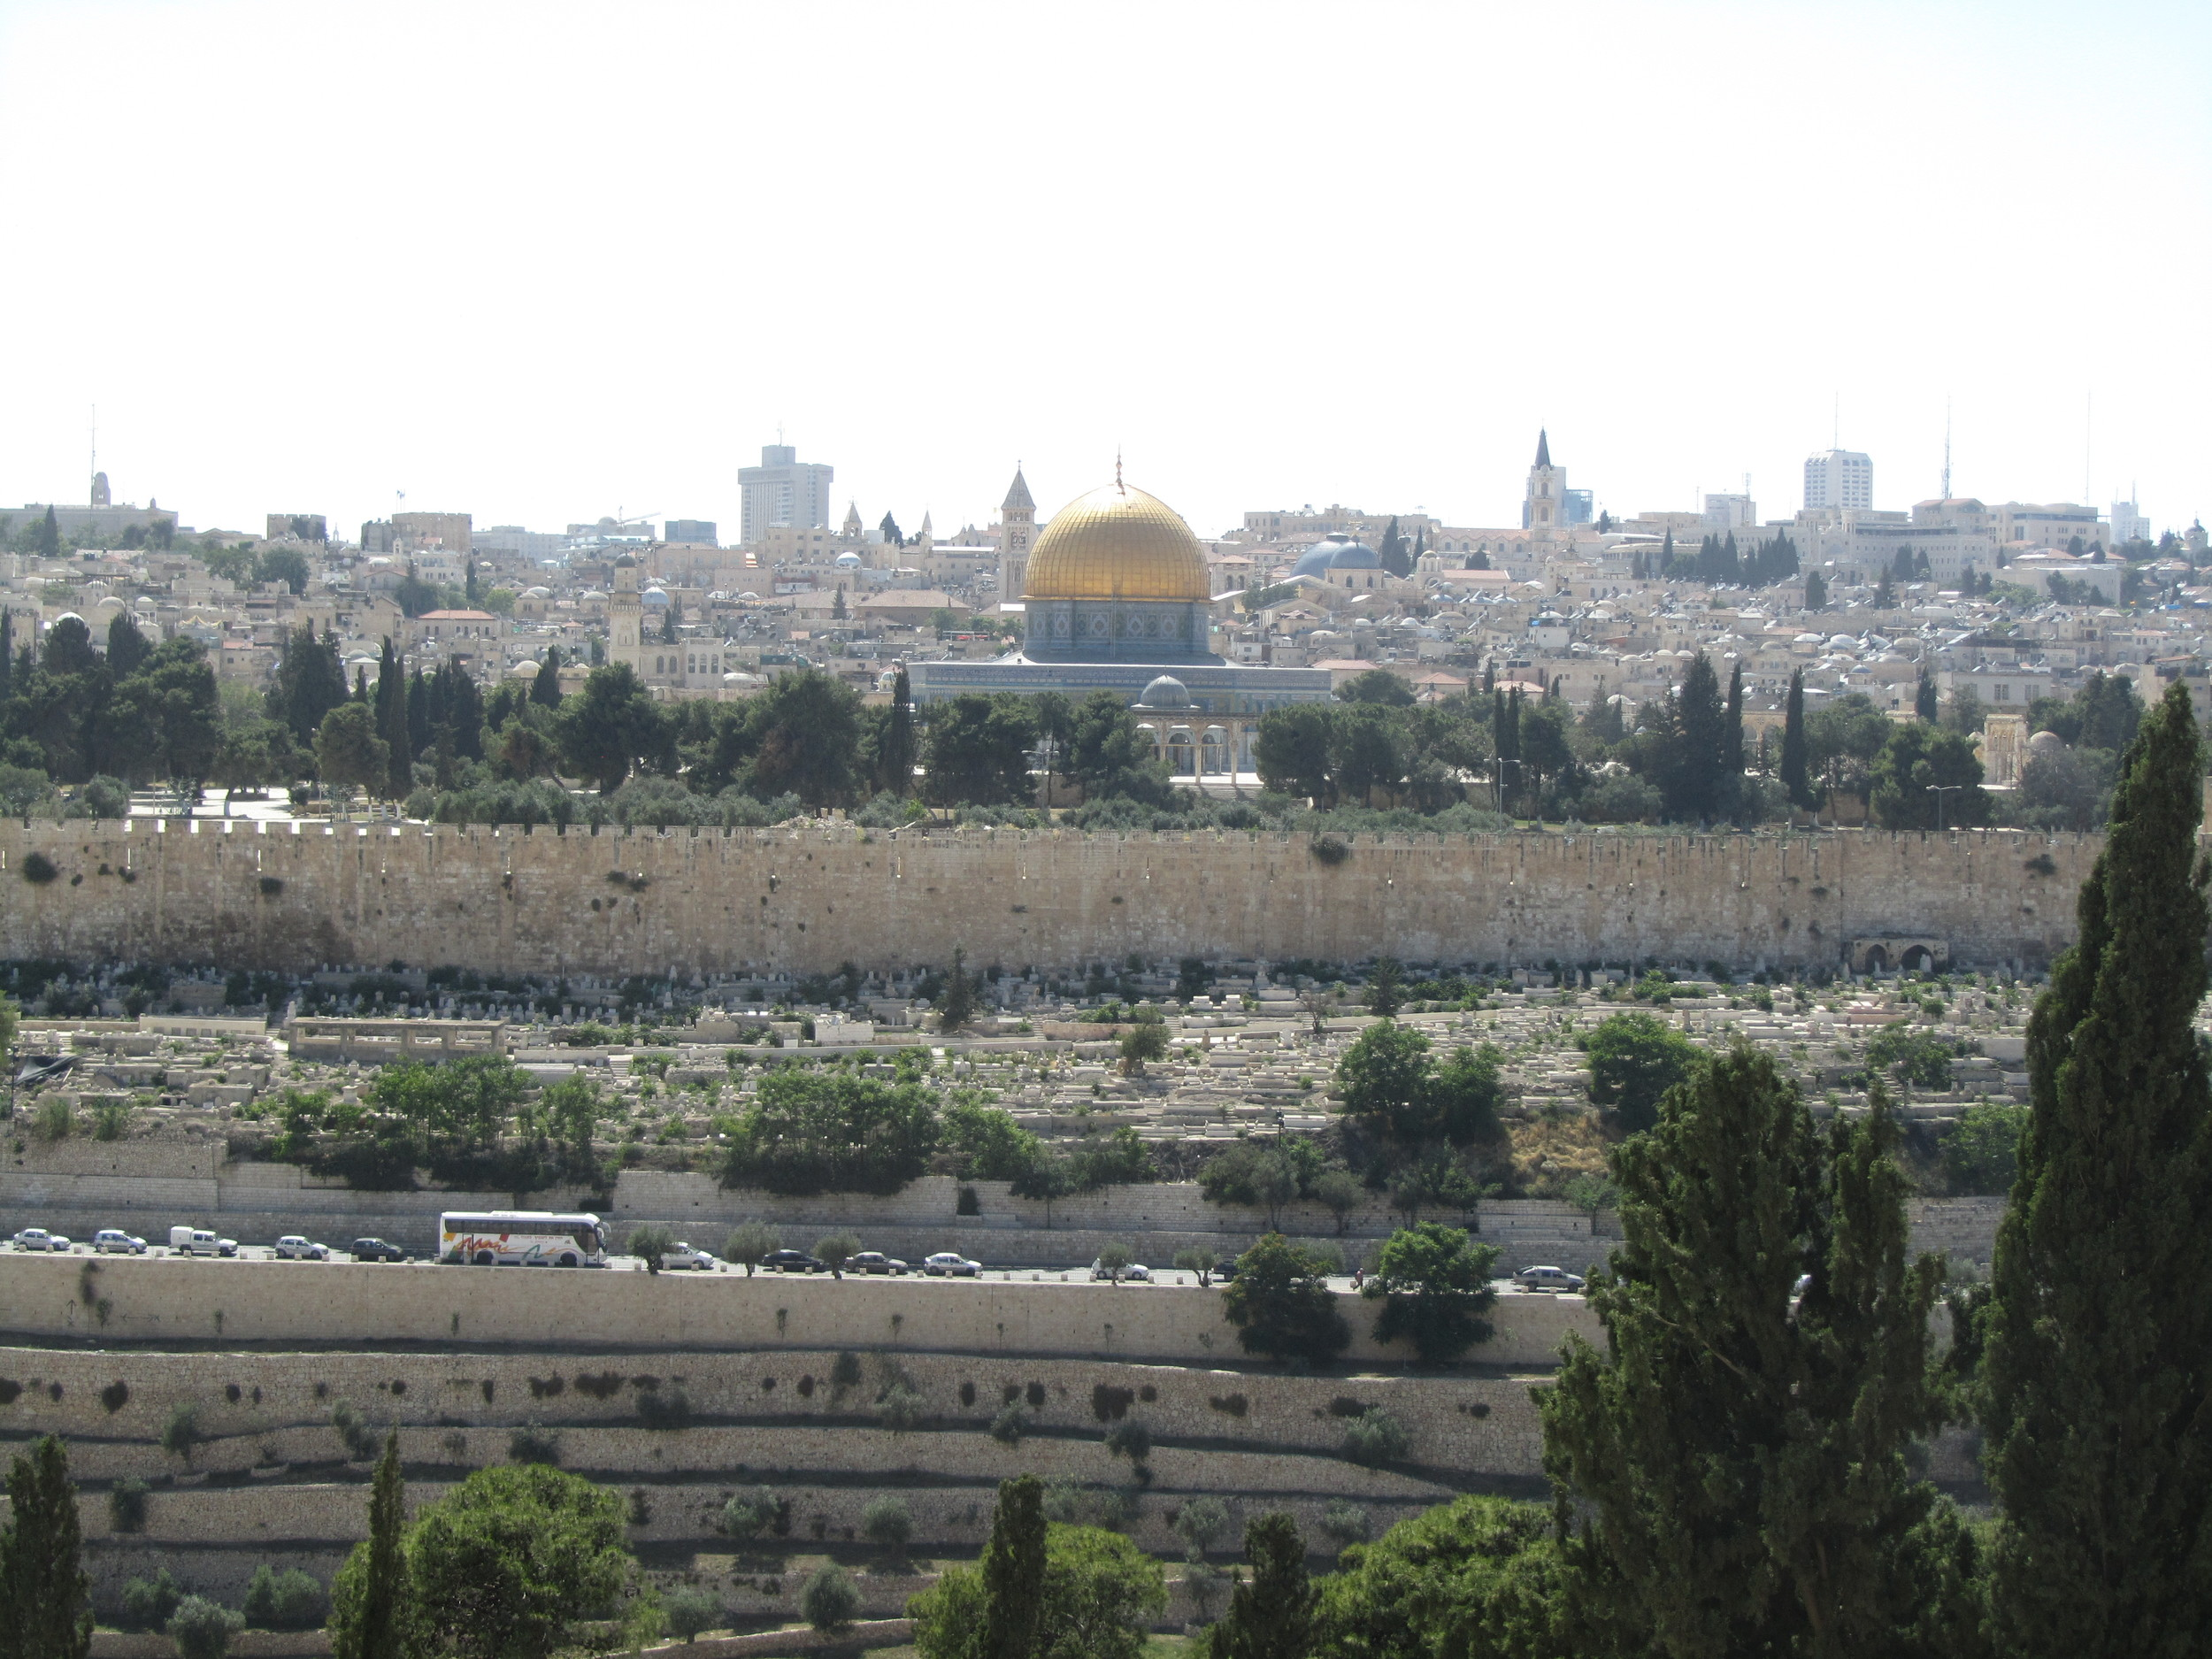 The city of Jerusalem viewed from the Mount of Olives